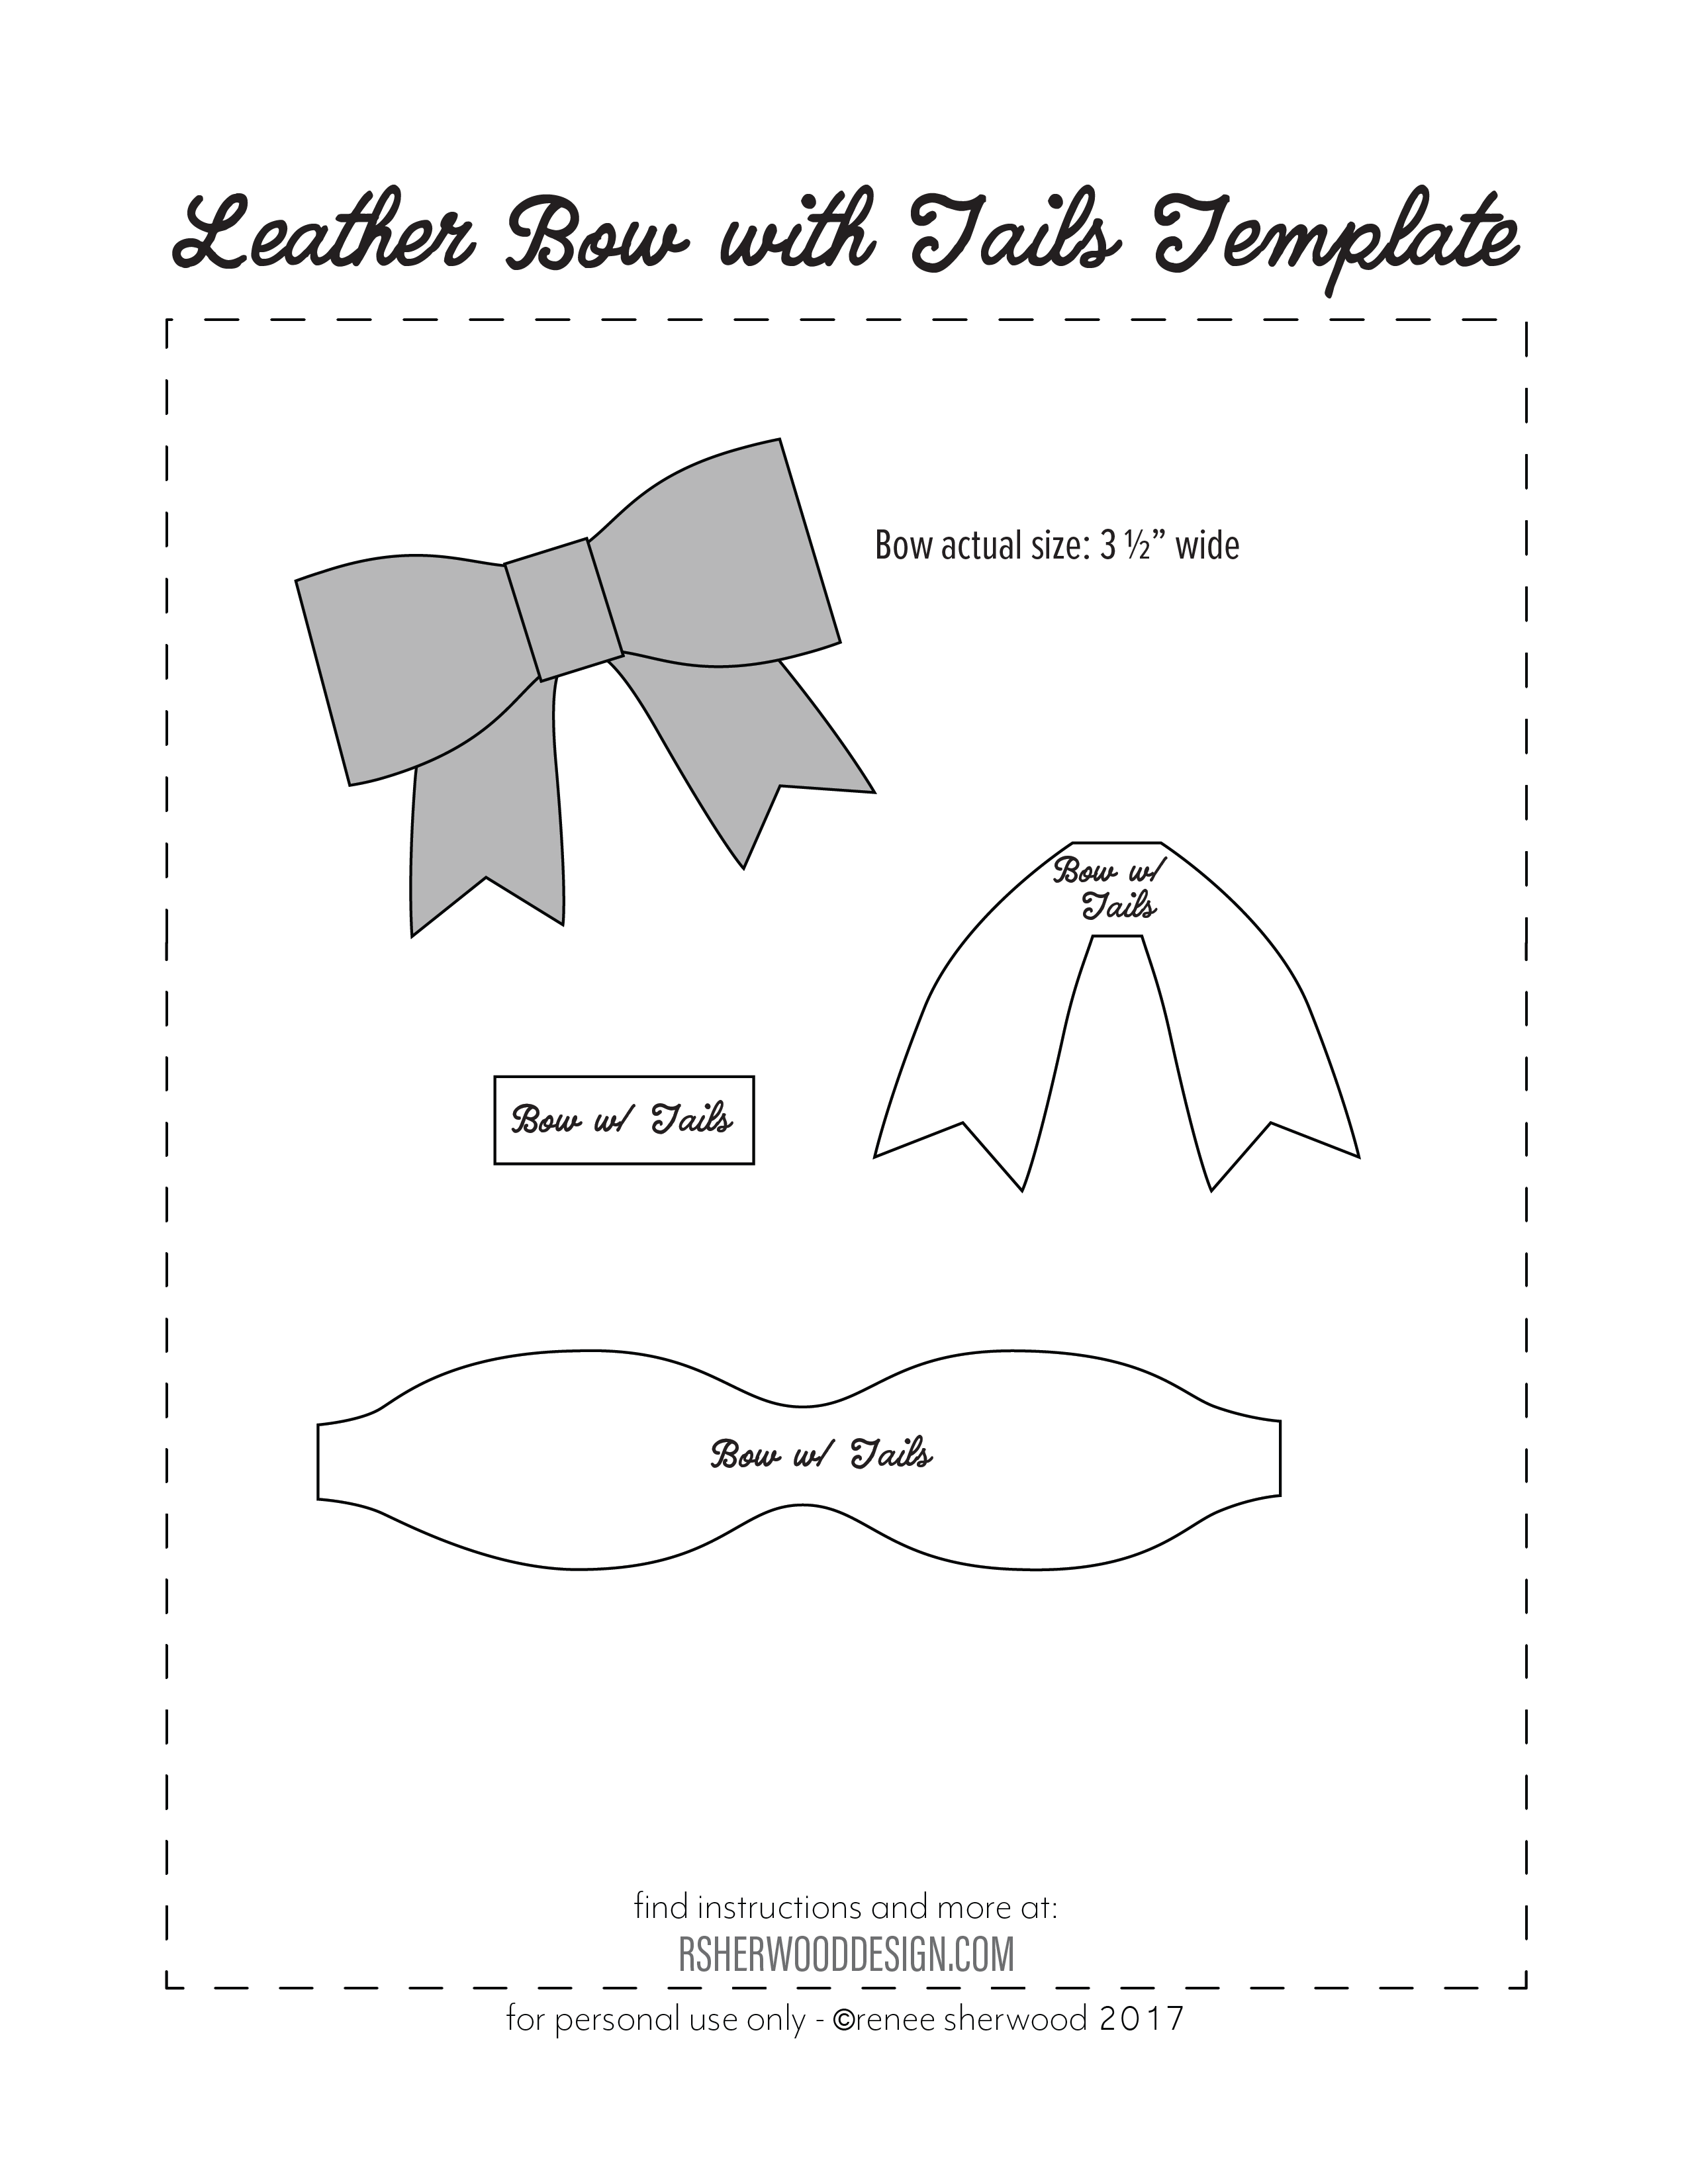 Bow Template Free : template, Leather, Template, Download, Www.rsherwooddesign.com, Bows,